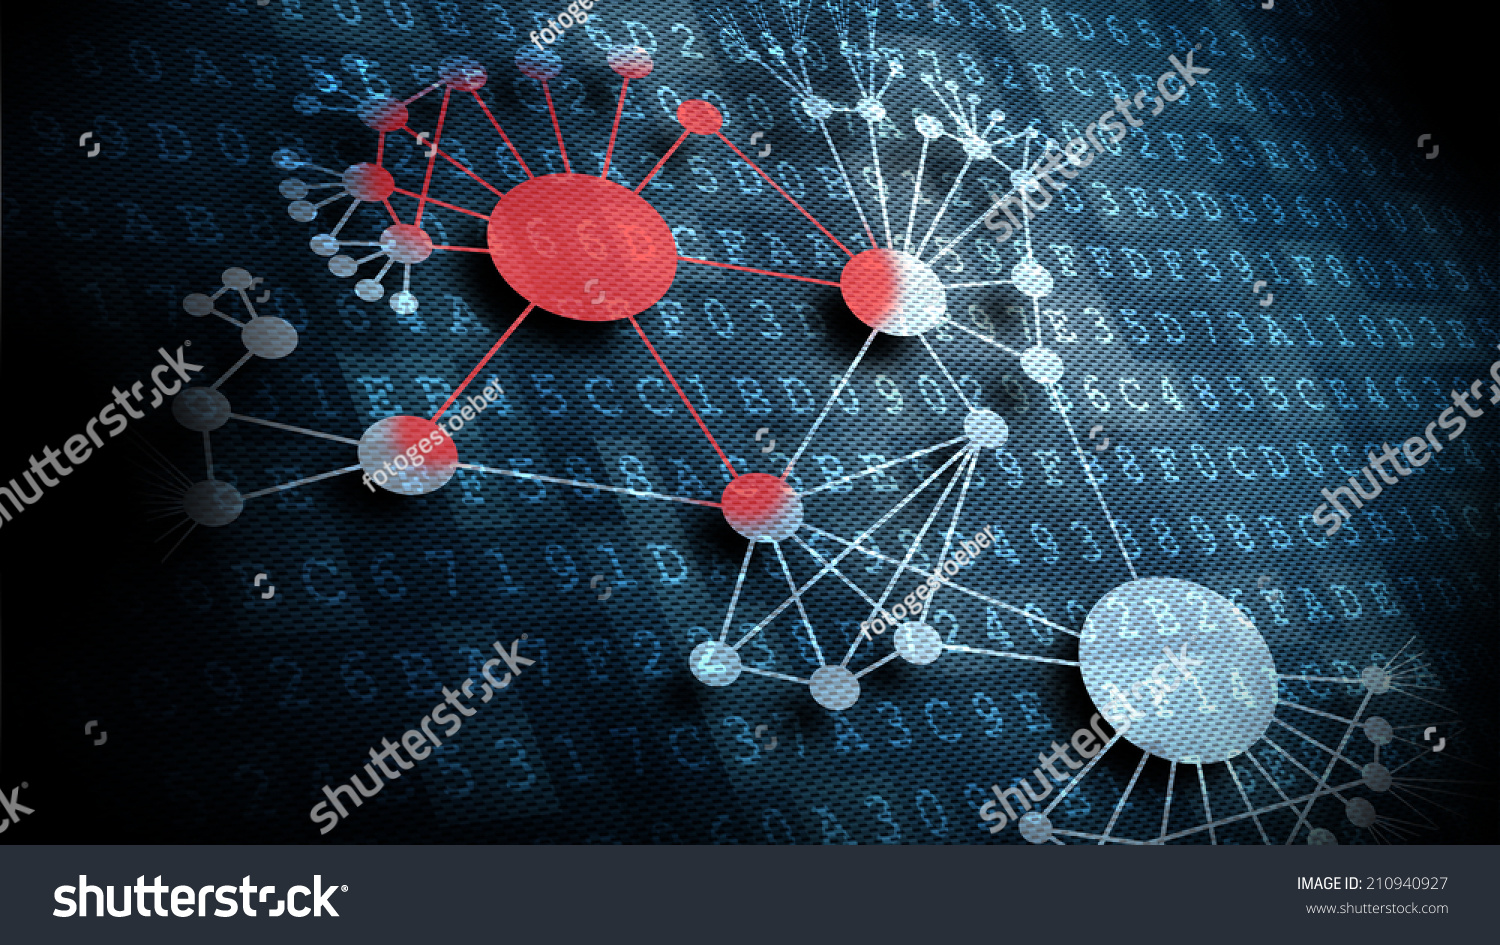 information flow chart diagram 2004 ford explorer stereo wiring virus infection spreading out network stock illustration 210940927 - shutterstock